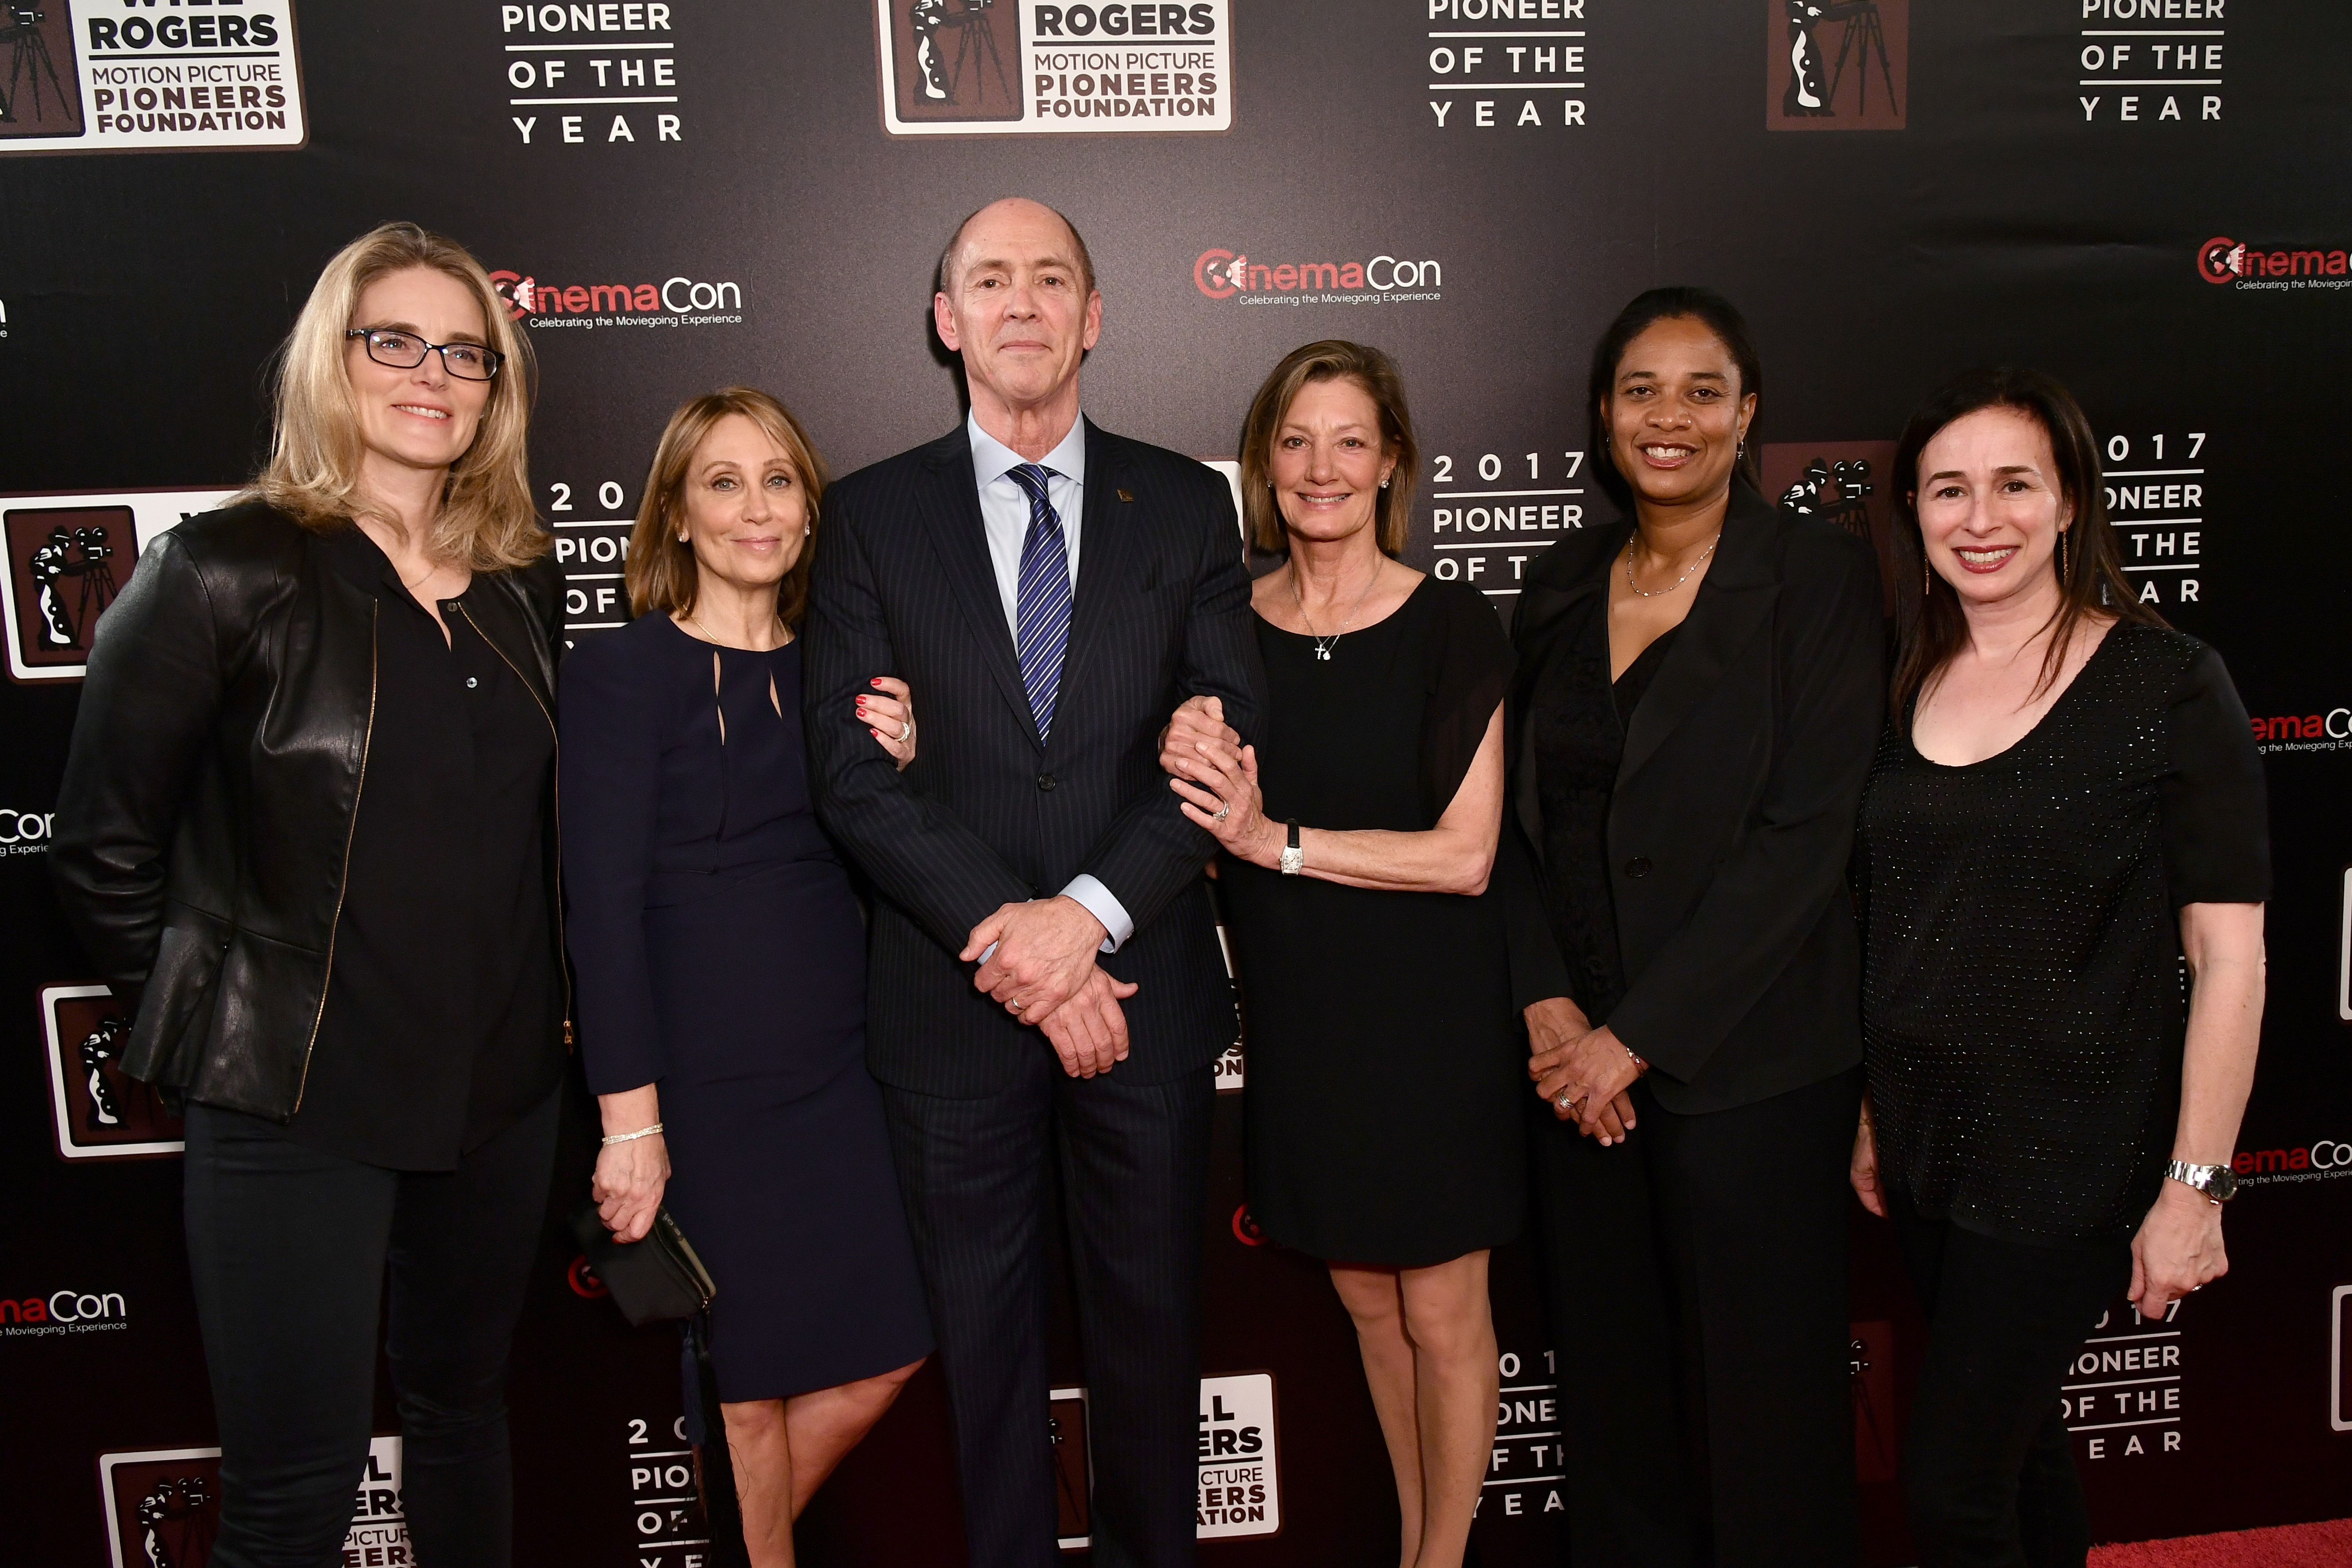 Emma Watts, Stacey Snider, Chris Aronson, Elizabeth Gabler, Vanessa Morrison and Pam LevinePioneer of the Year dinner, Arrivals, CinemaCon, Las Vegas, USA - 29 Mar 2017